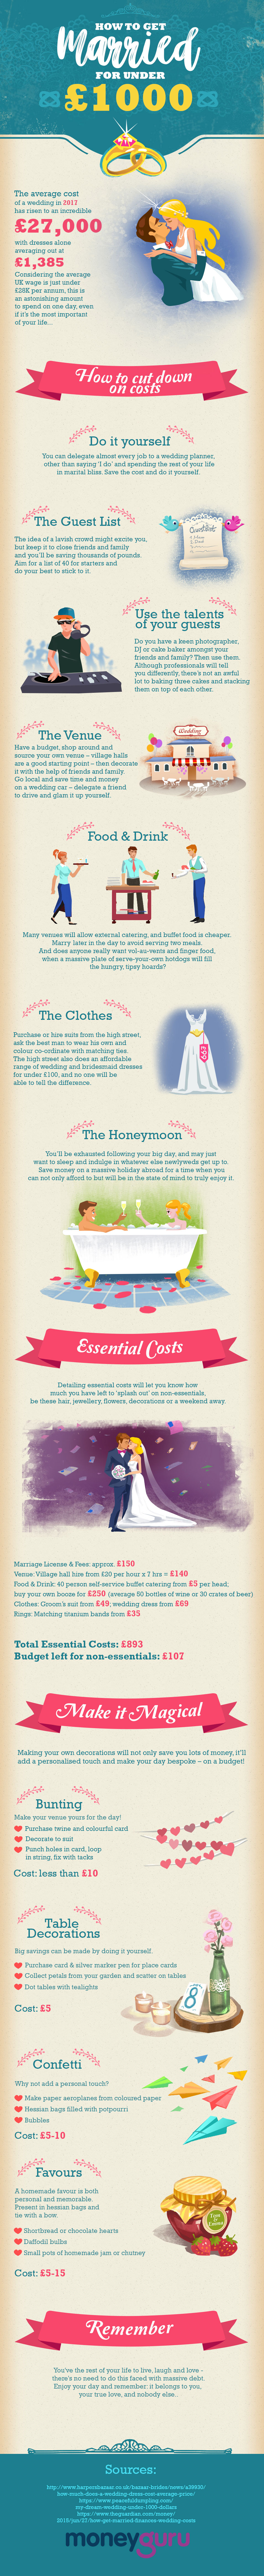 Plan the Perfect Wedding for Only £1000 - Infographic